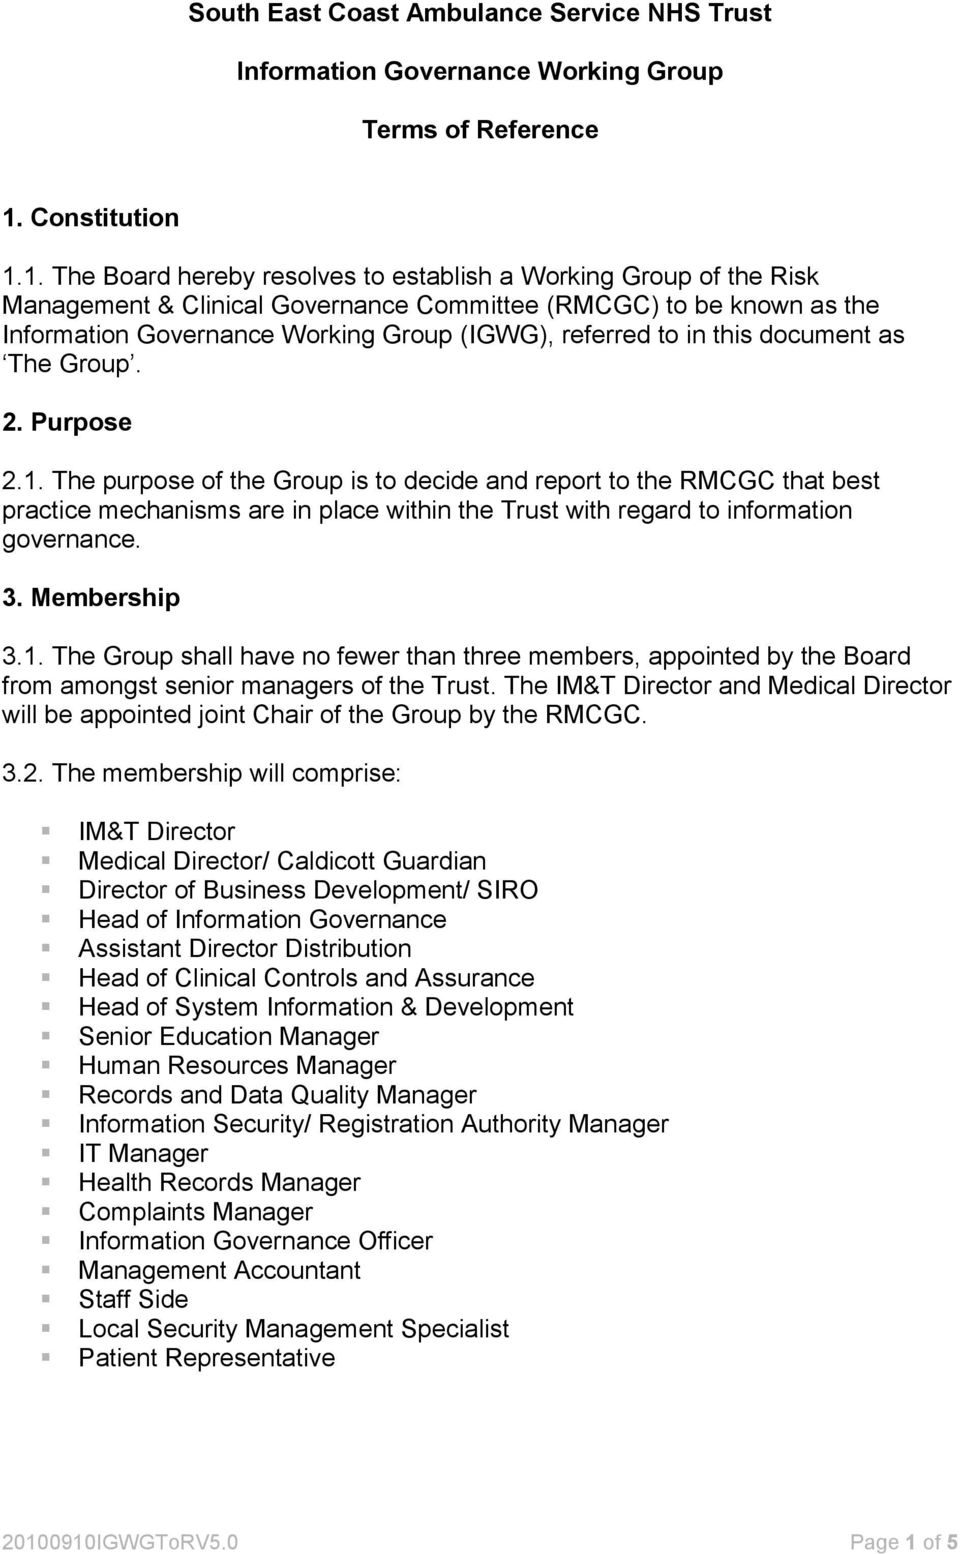 1. The Board hereby resolves to establish a Working Group of the Risk Management & Clinical Governance Committee (RMCGC) to be known as the Information Governance Working Group (IGWG), referred to in